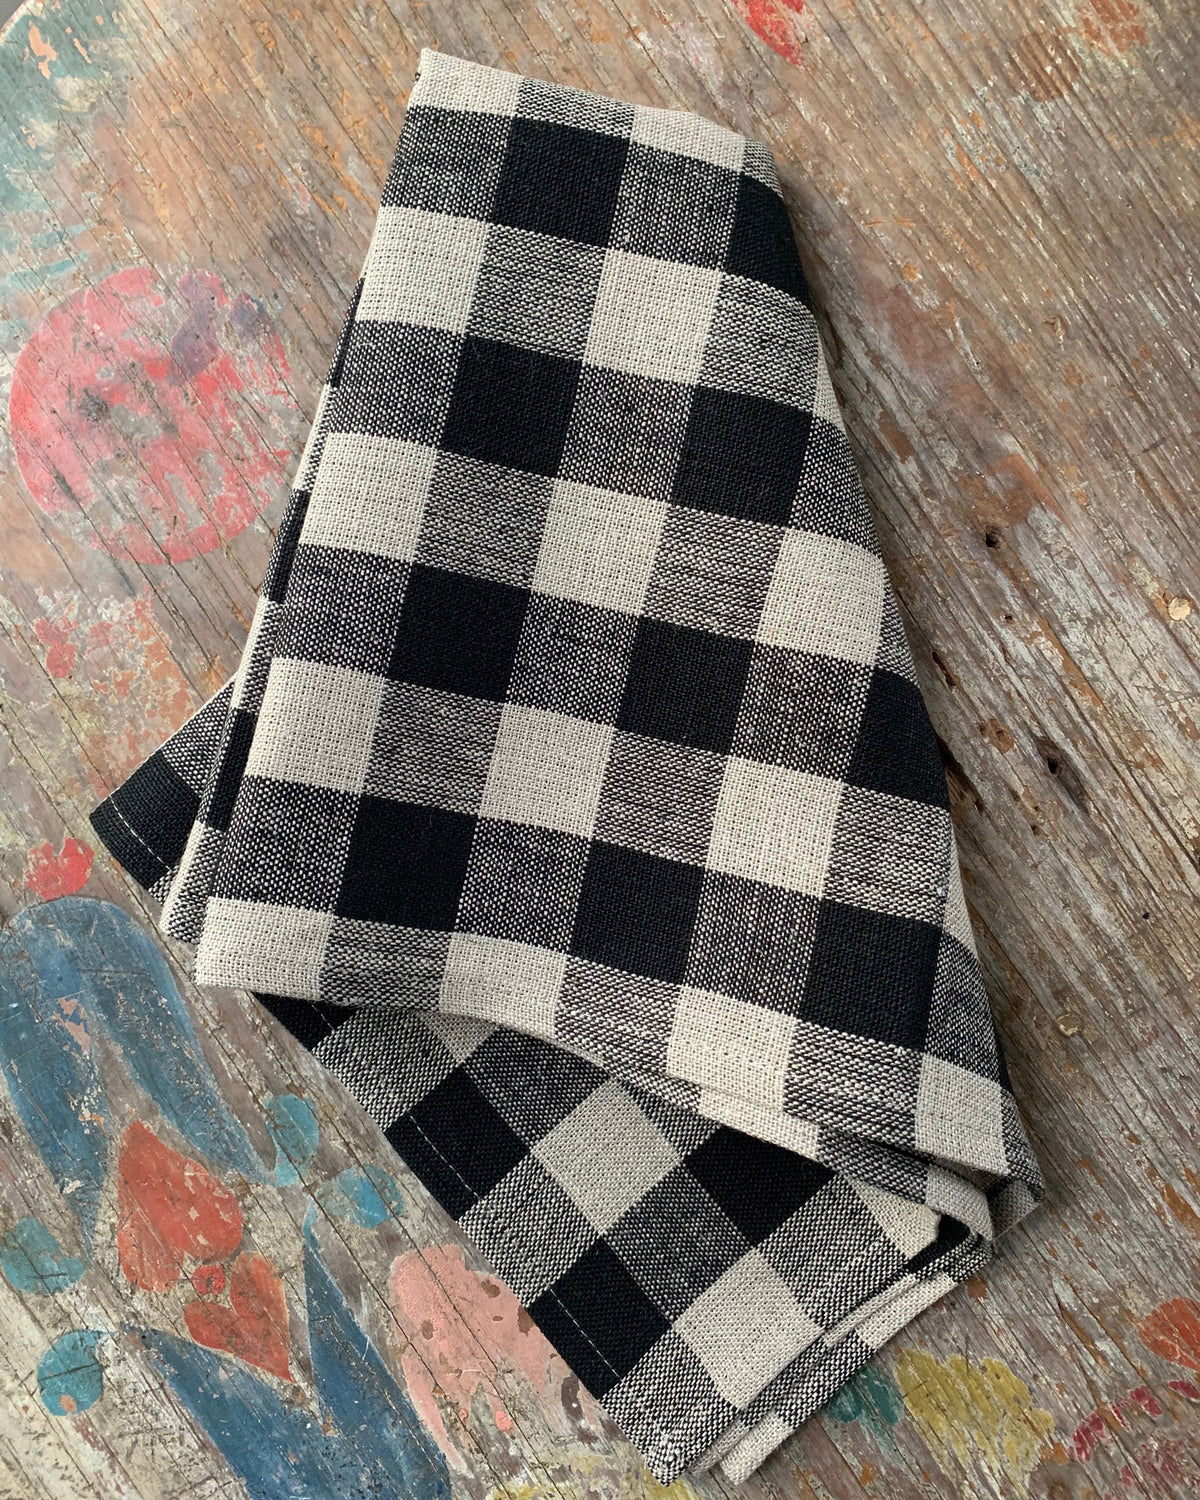 Fog Linen Work Dish Cloth Thick Gingham | Set of 2